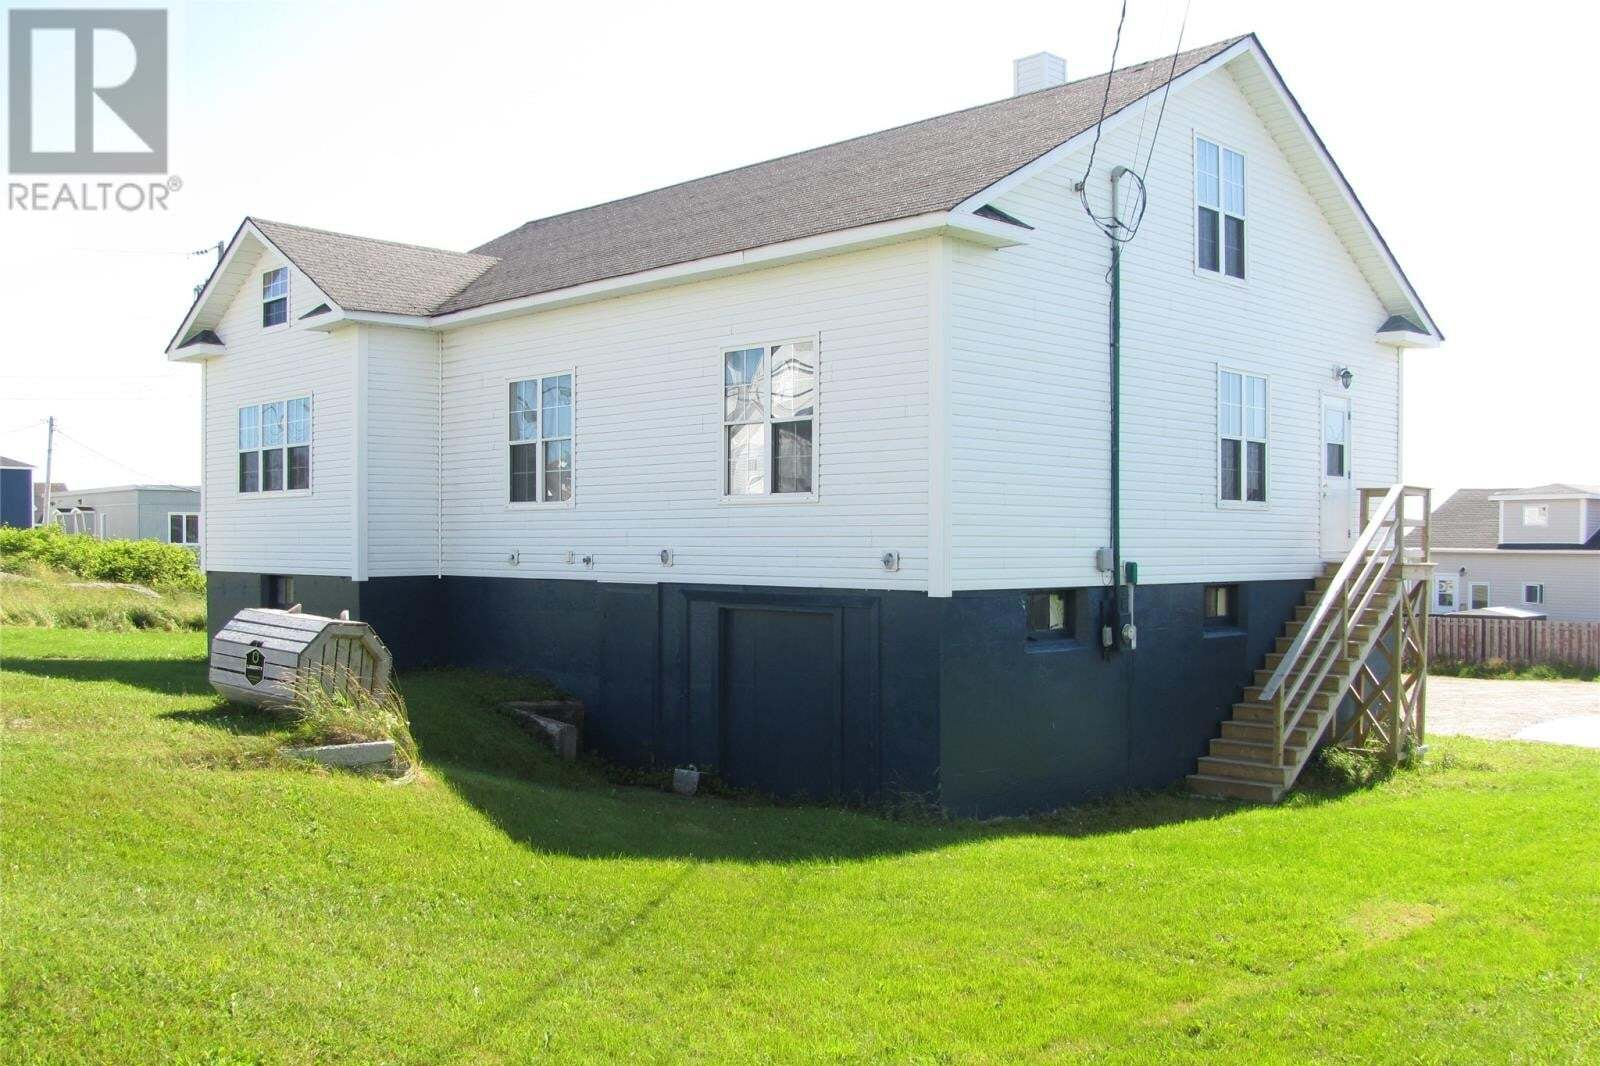 House for sale at 112 Main St Port Aux Basques Newfoundland - MLS: 1217670